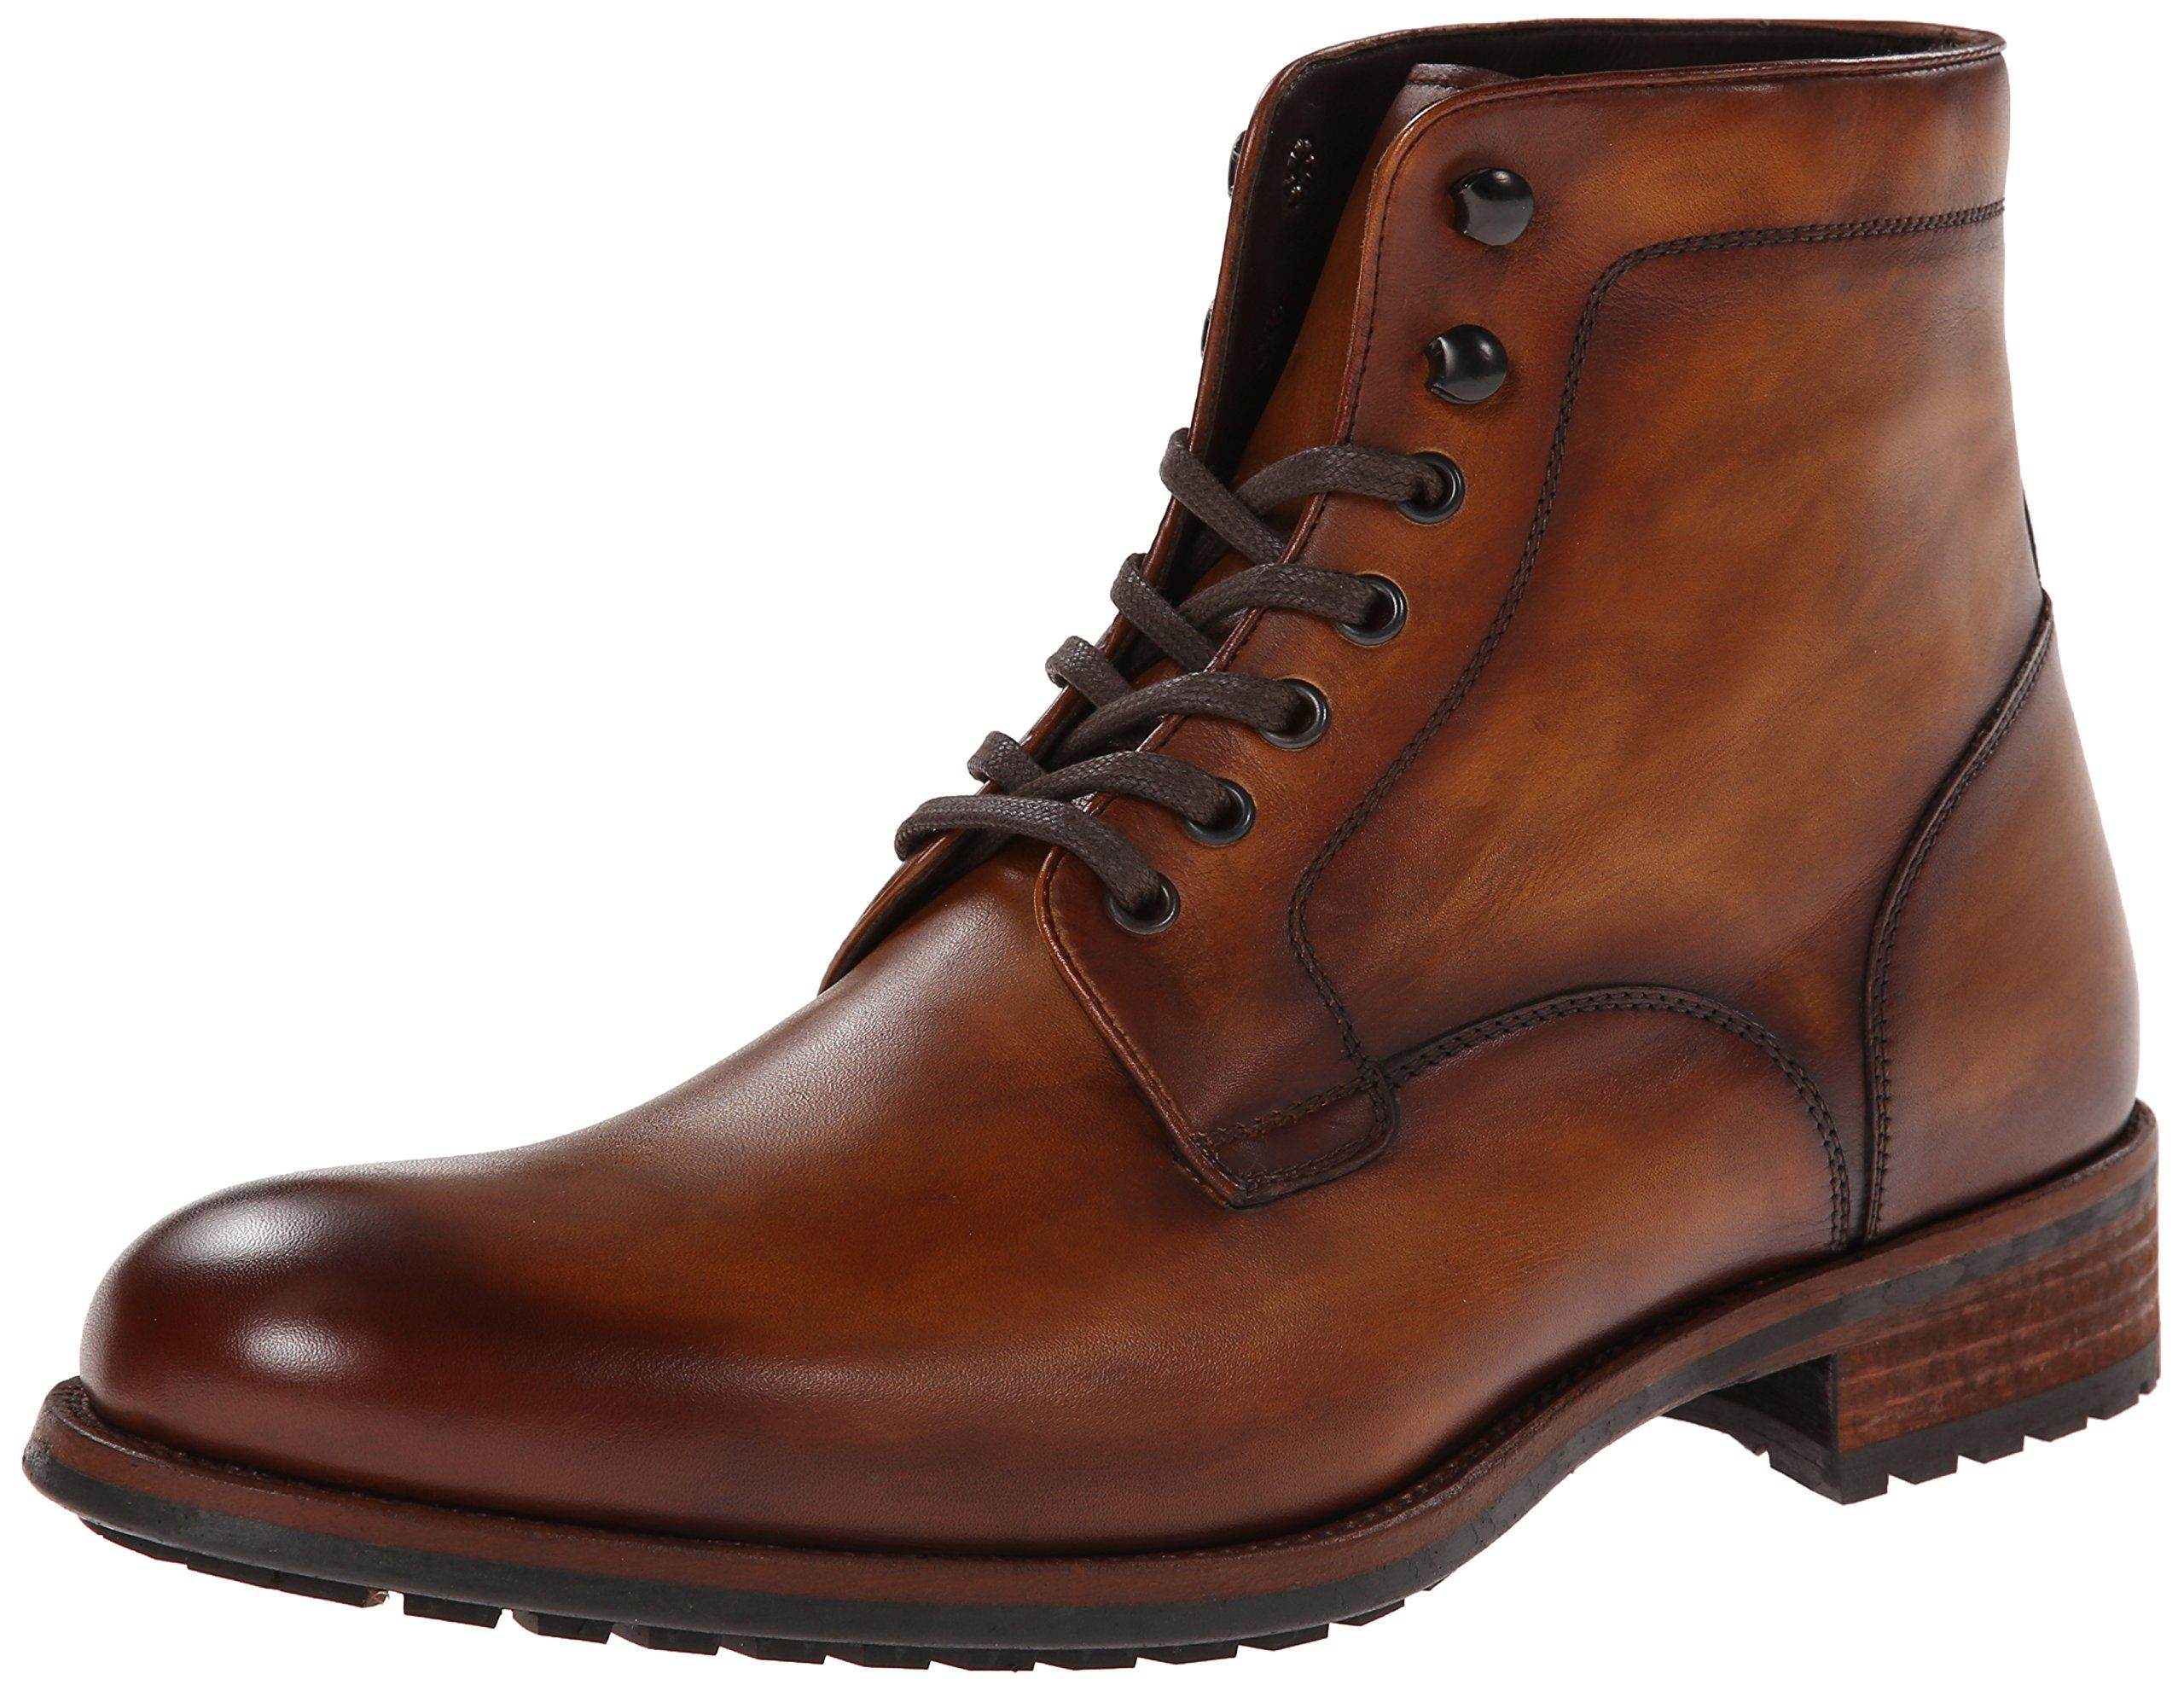 Magnanni Men's Marcelo Engineer Boot,Cognac,12 M US | Moda